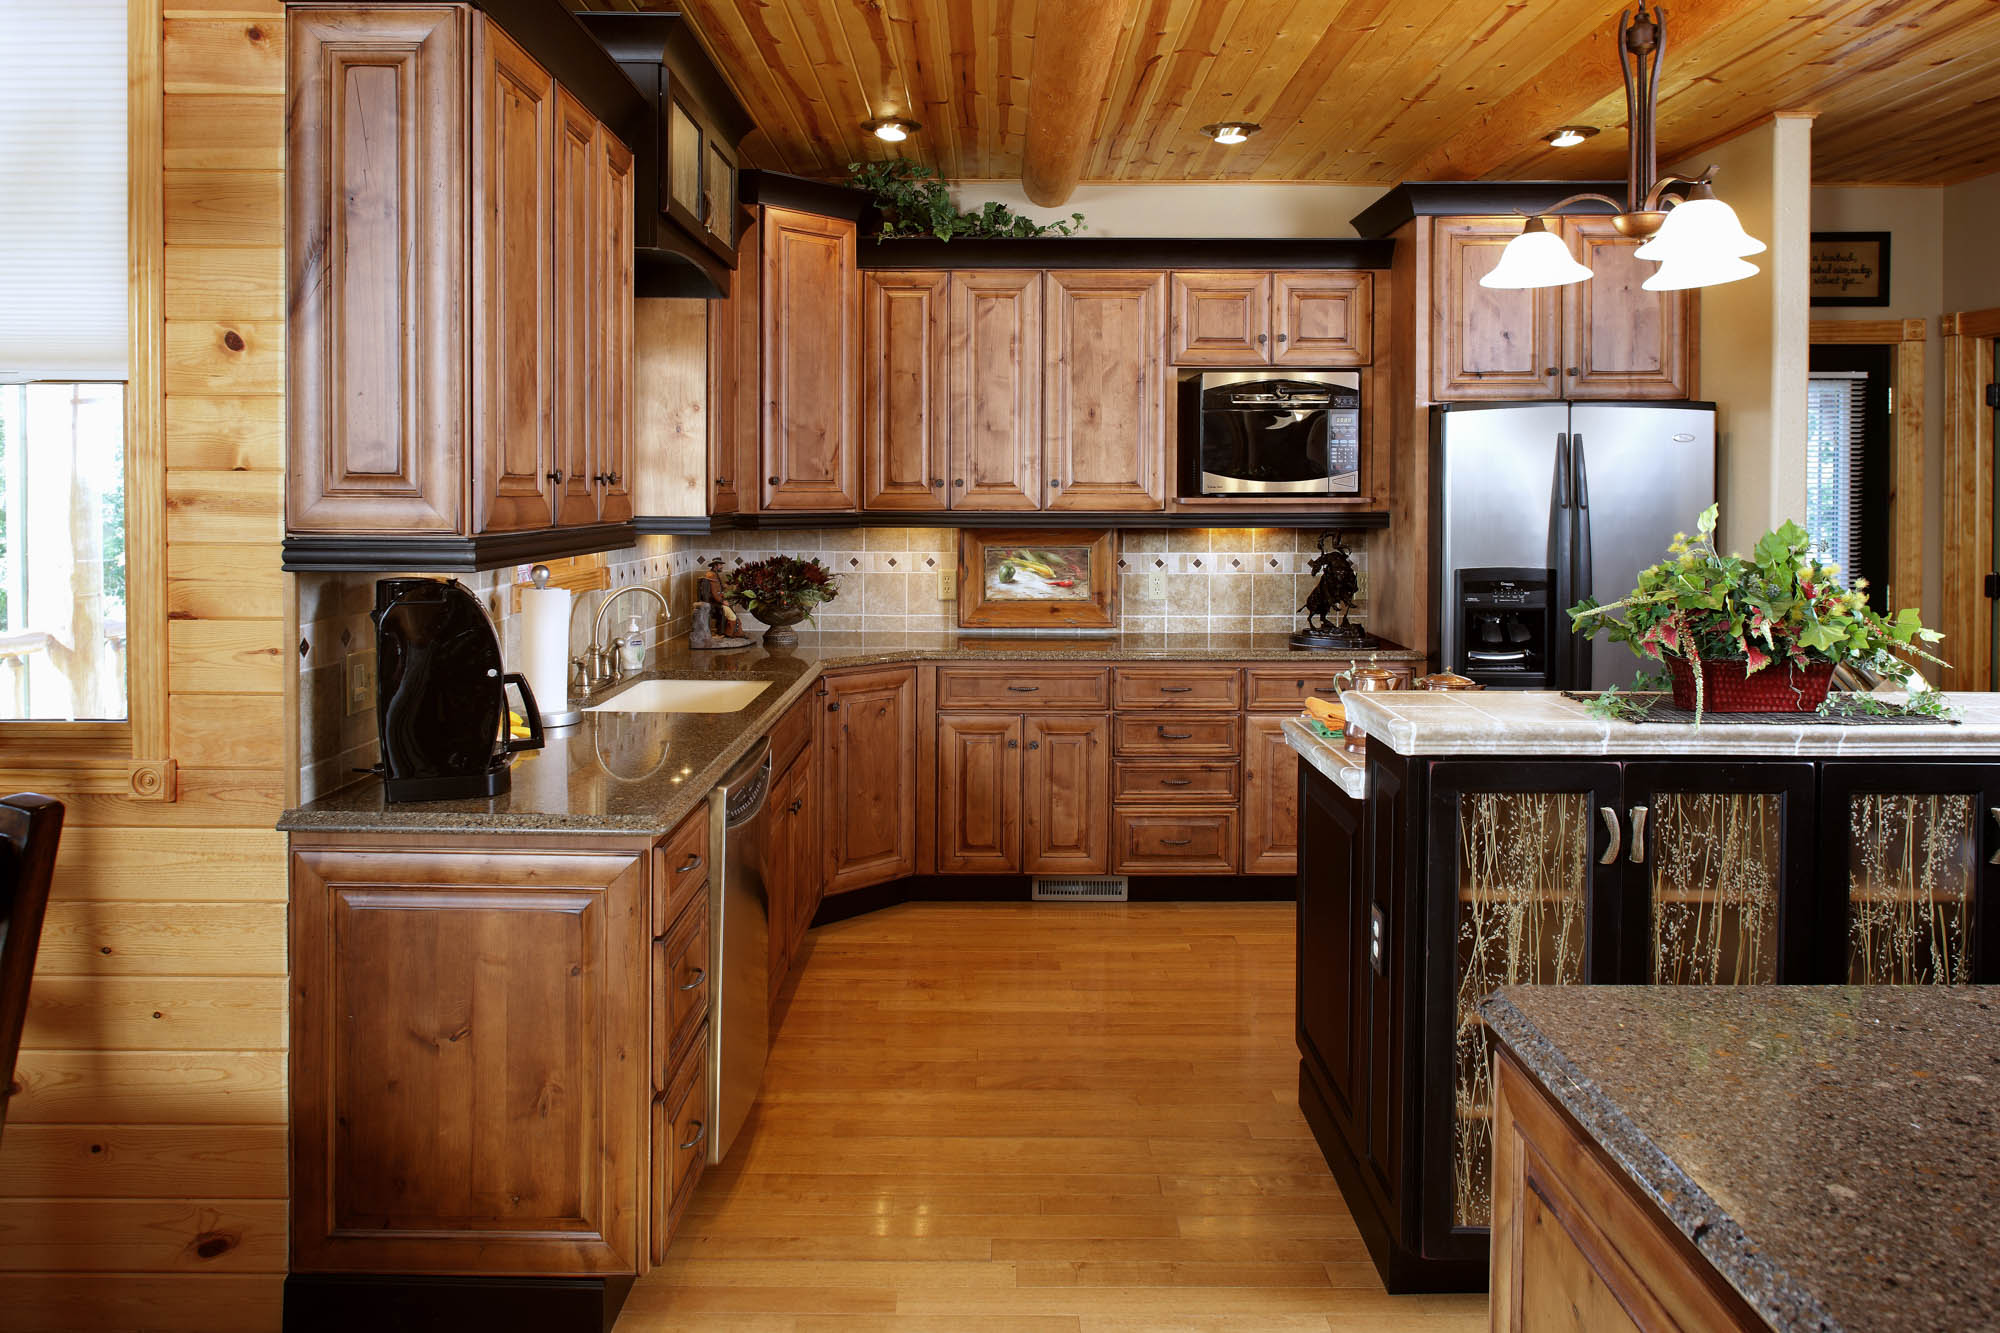 Renew | Stained kitchen cabinets in Vintage Nutmeg by Showplace Cabinetry - view 2